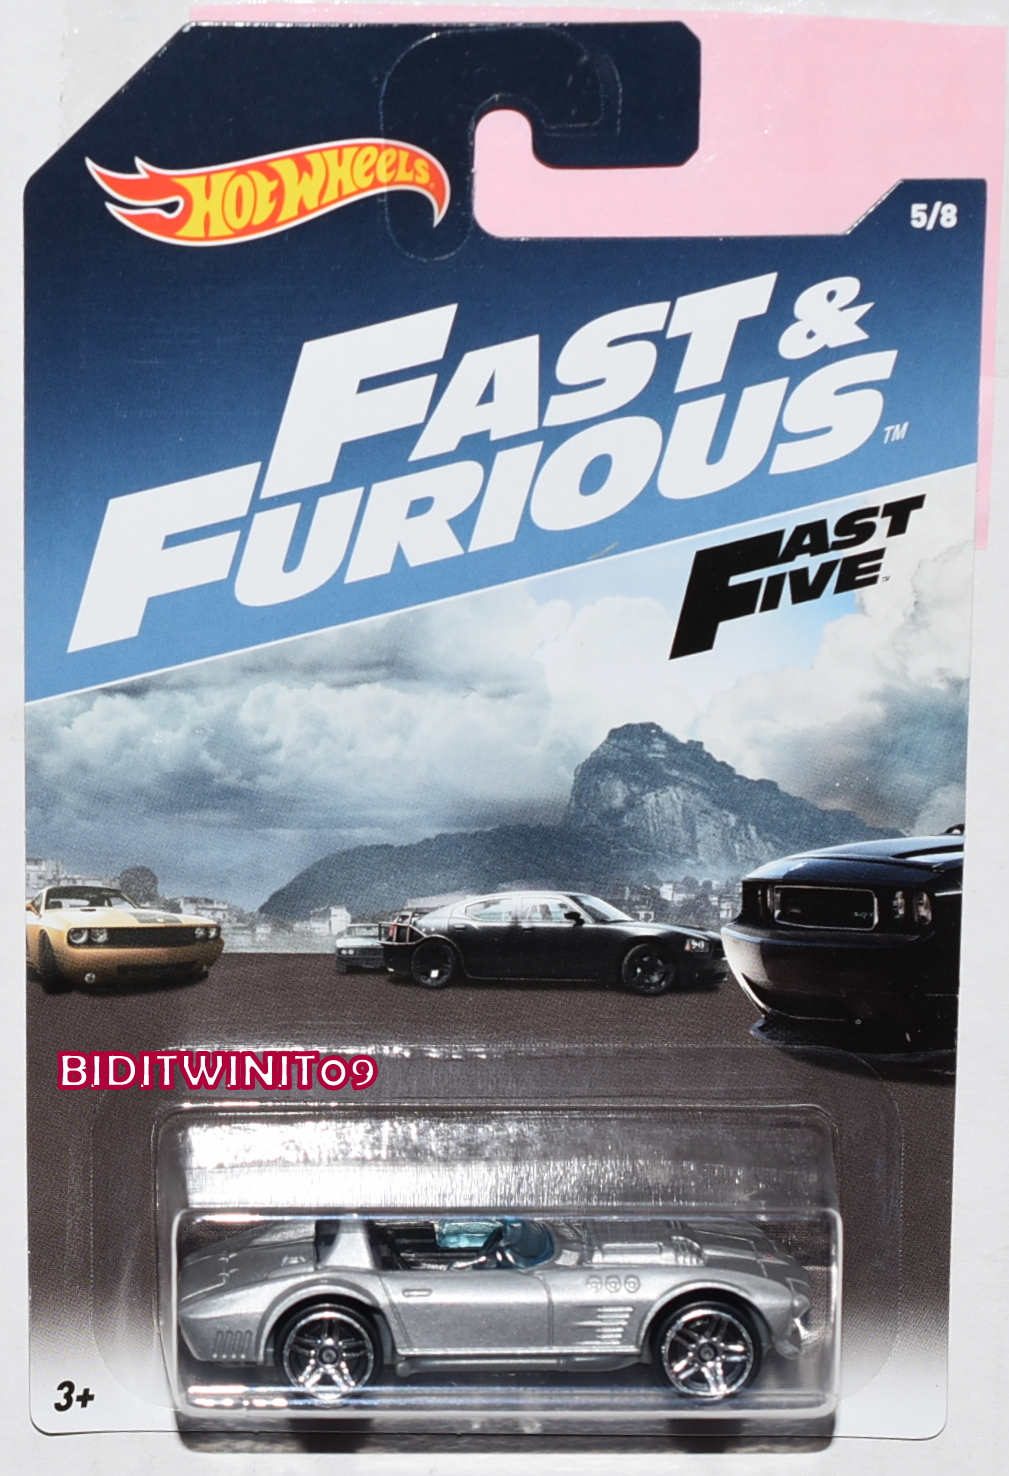 HOT WHEELS 2017 FAST & FURIOUS CORVETTE GRAND SPORT ROADSTER #5/8